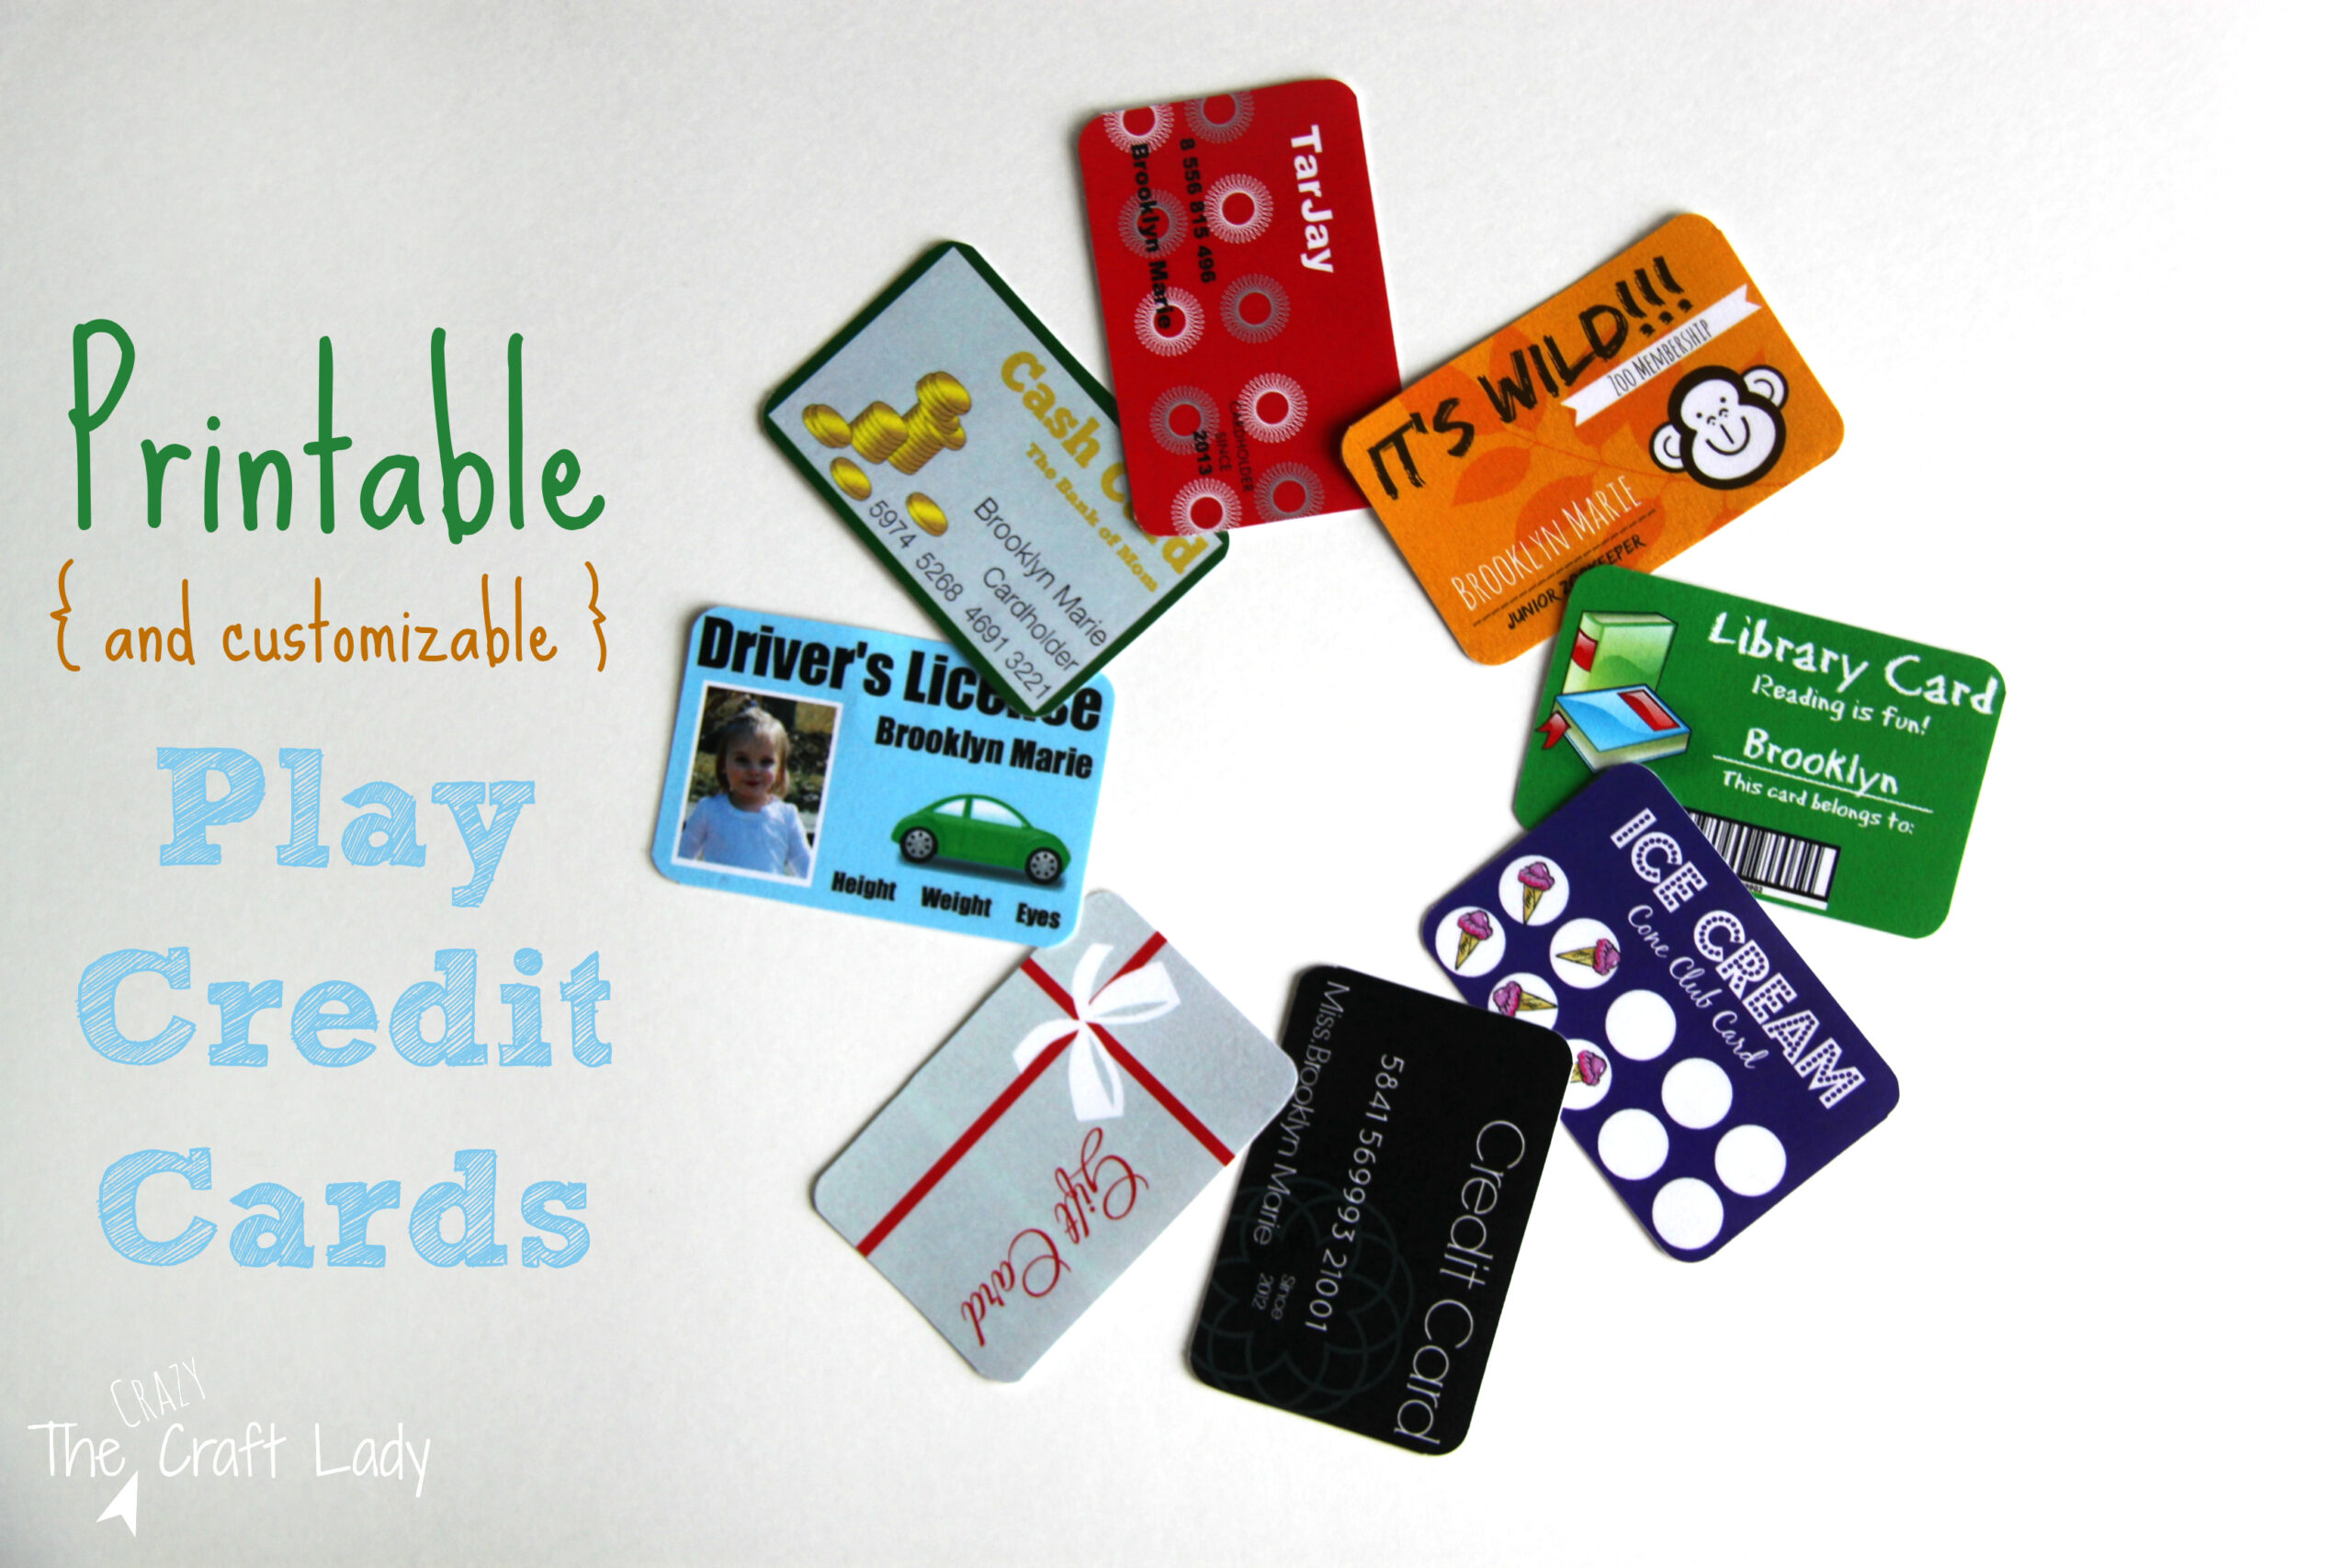 Printable (and Customizable) Play Credit Cards - The Crazy Craft Lady